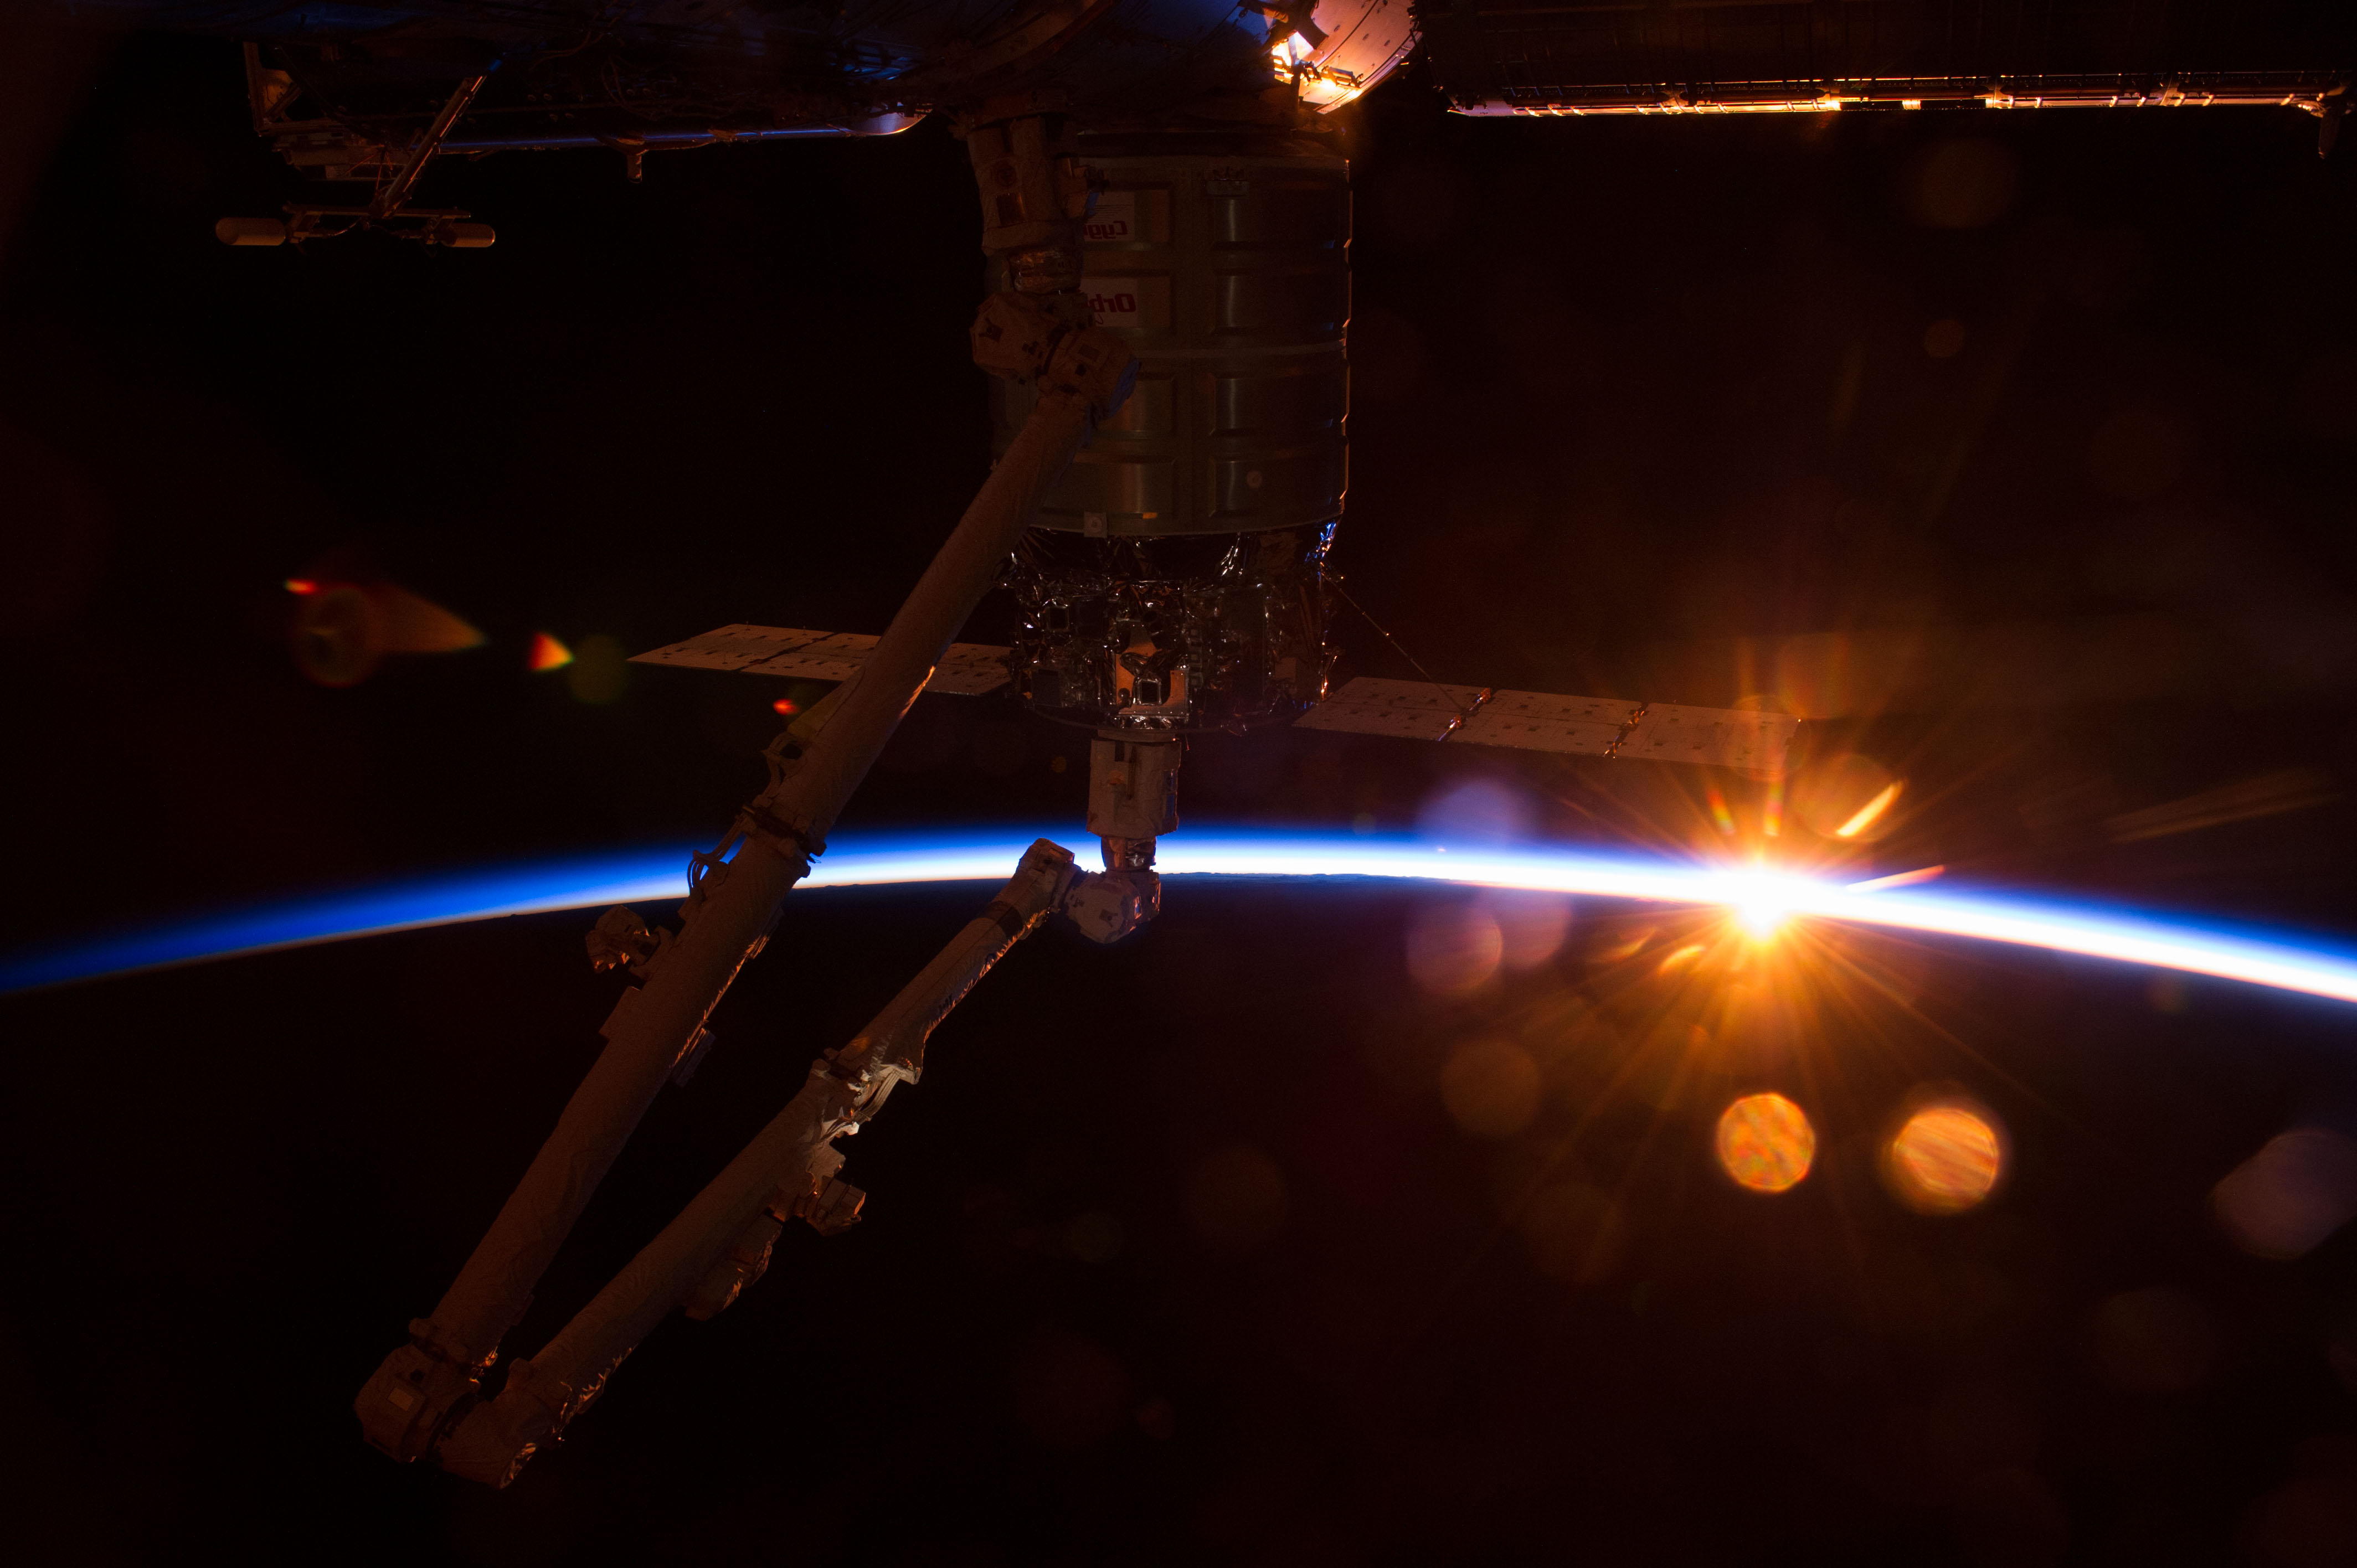 NASA Opens International Space Station to New Commercial